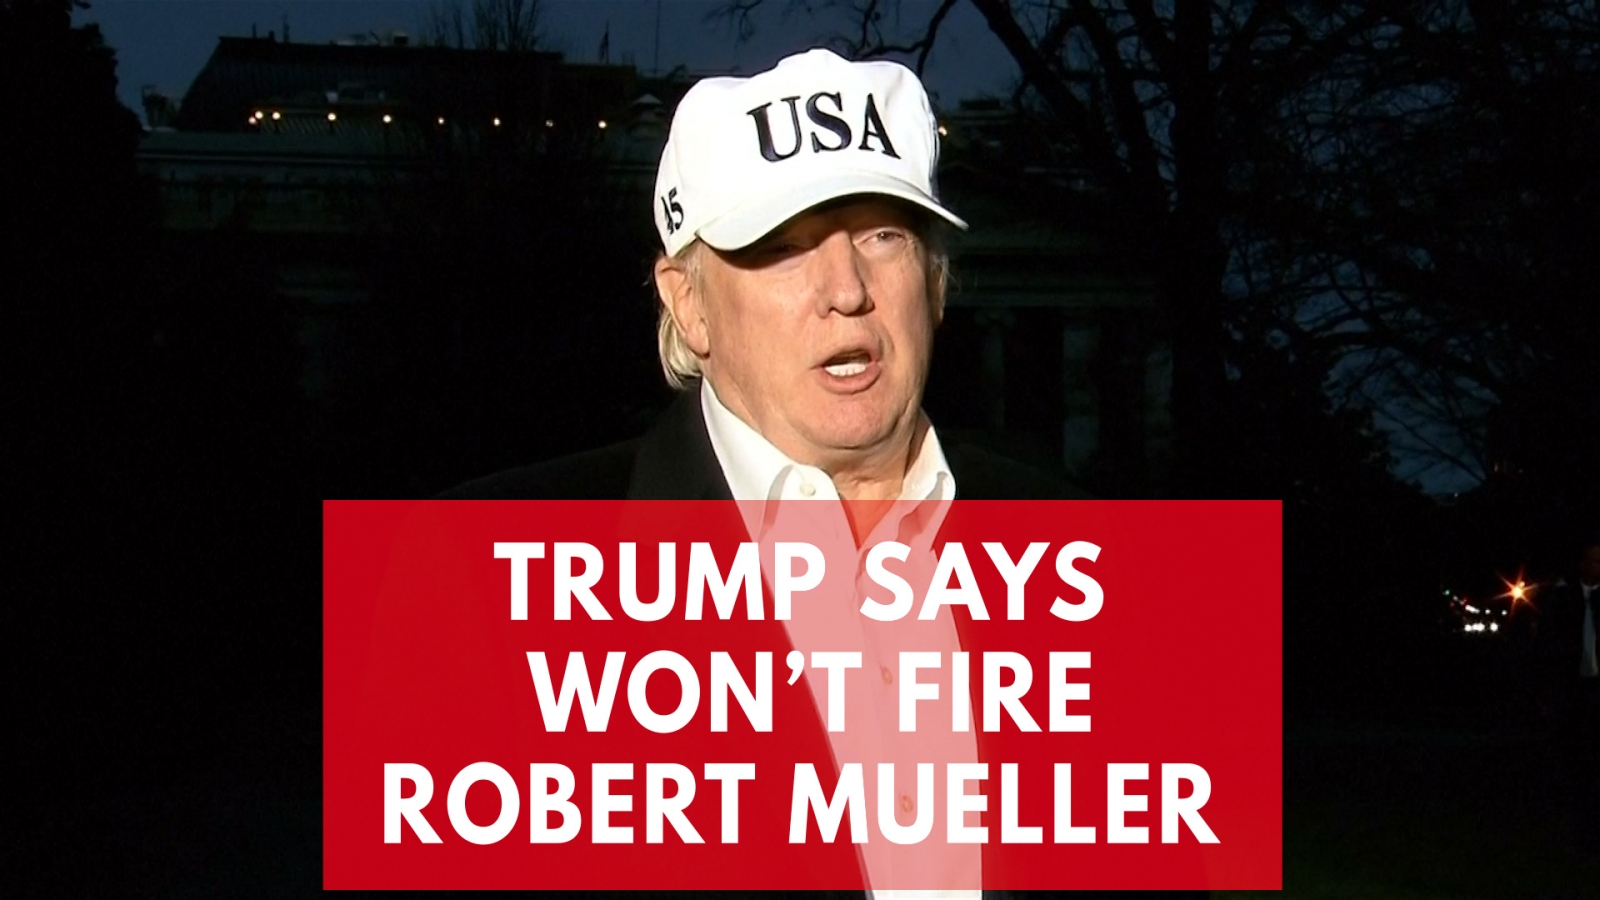 trump-shoots-down-rumours-says-no-plans-to-fire-russia-probe-chief-robert-mueller